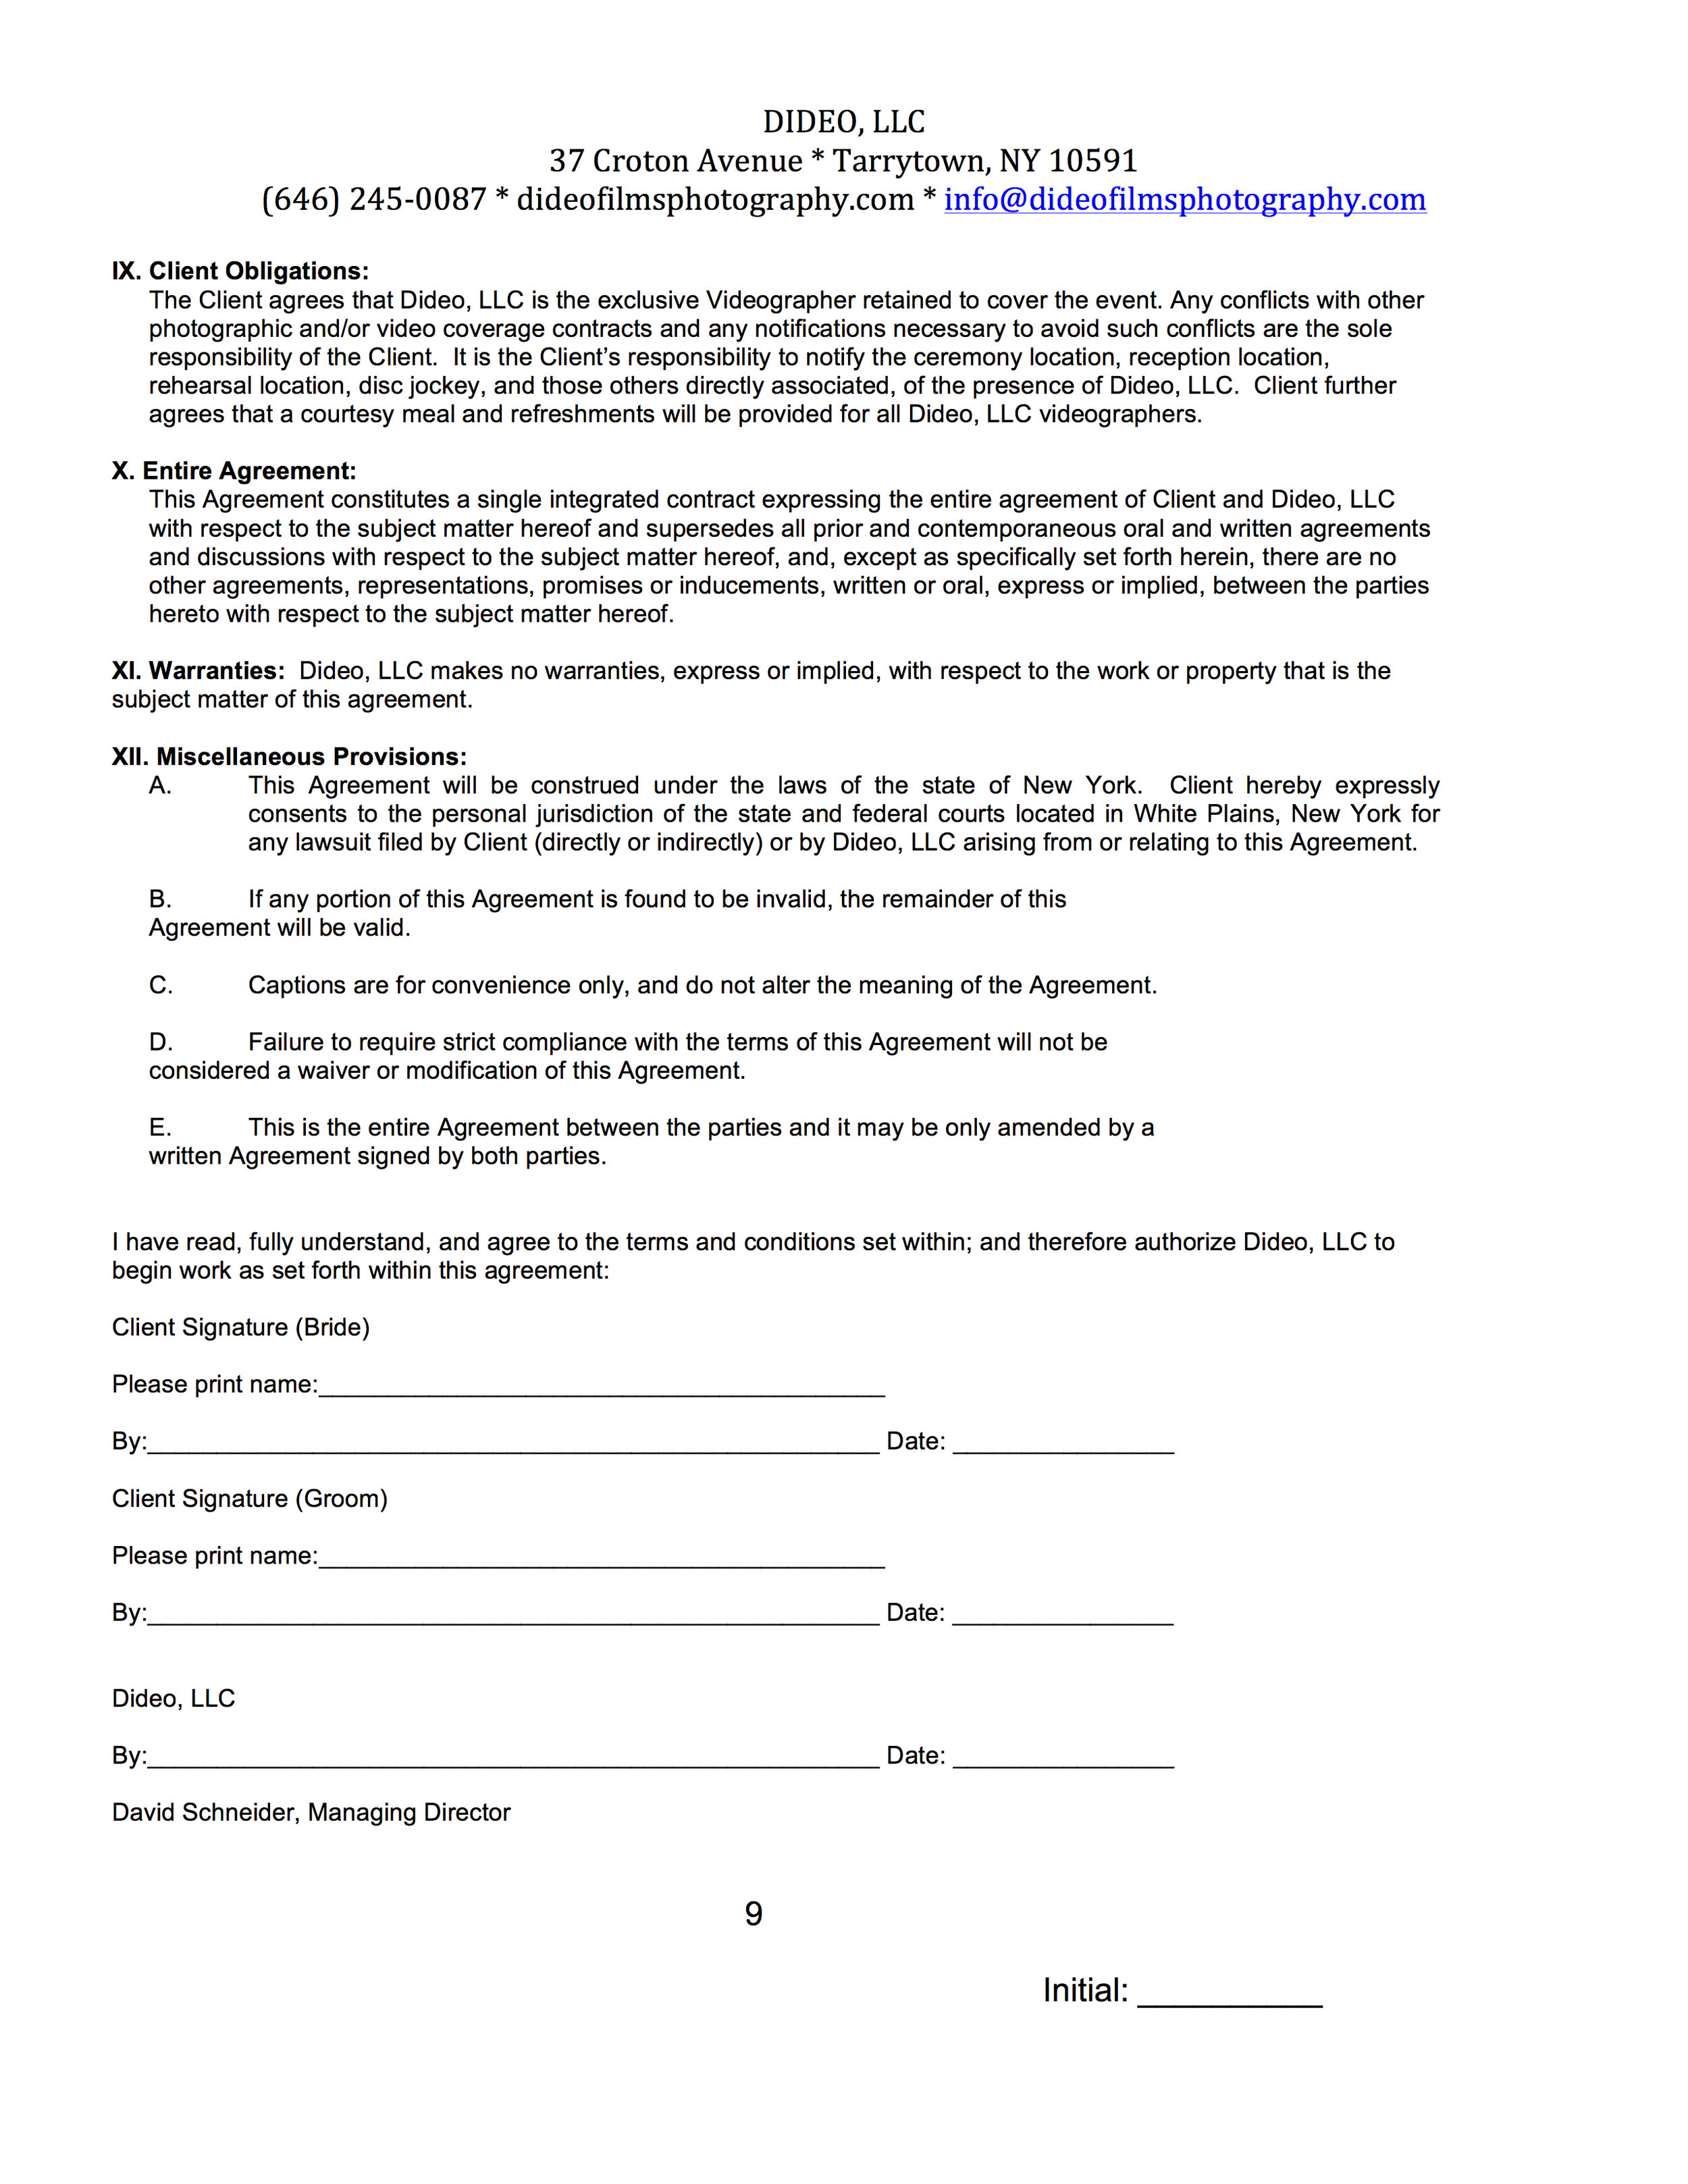 p9 Dideo, LLC_Wedding Photography + Cinematography Contract.jpg